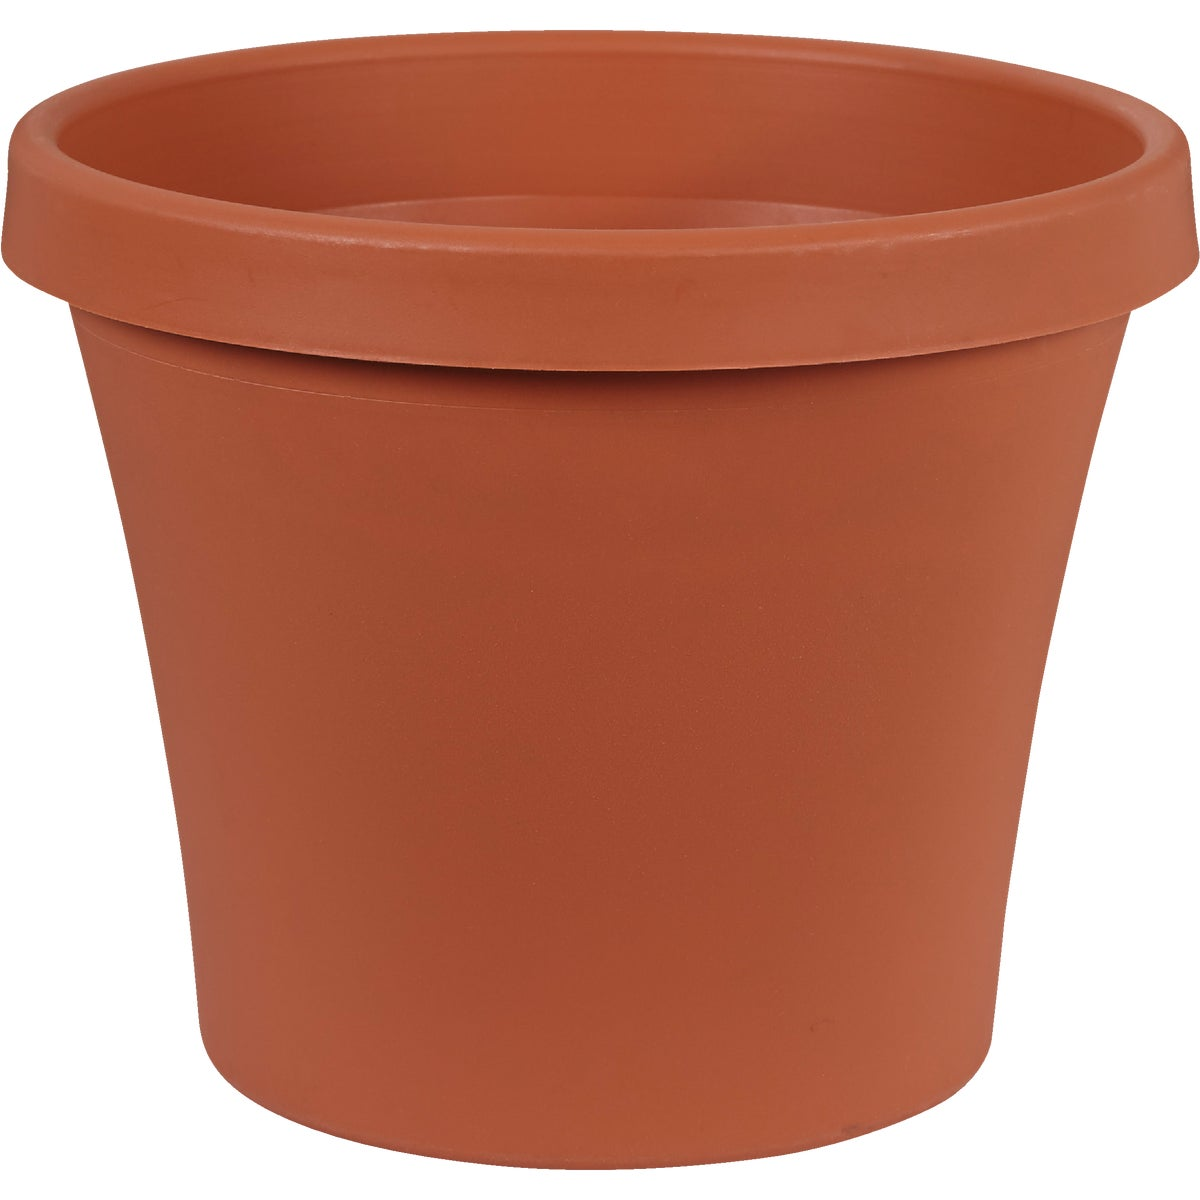 "12"" CLAY POLY POT - 50012C by Fiskars Brands Inc"